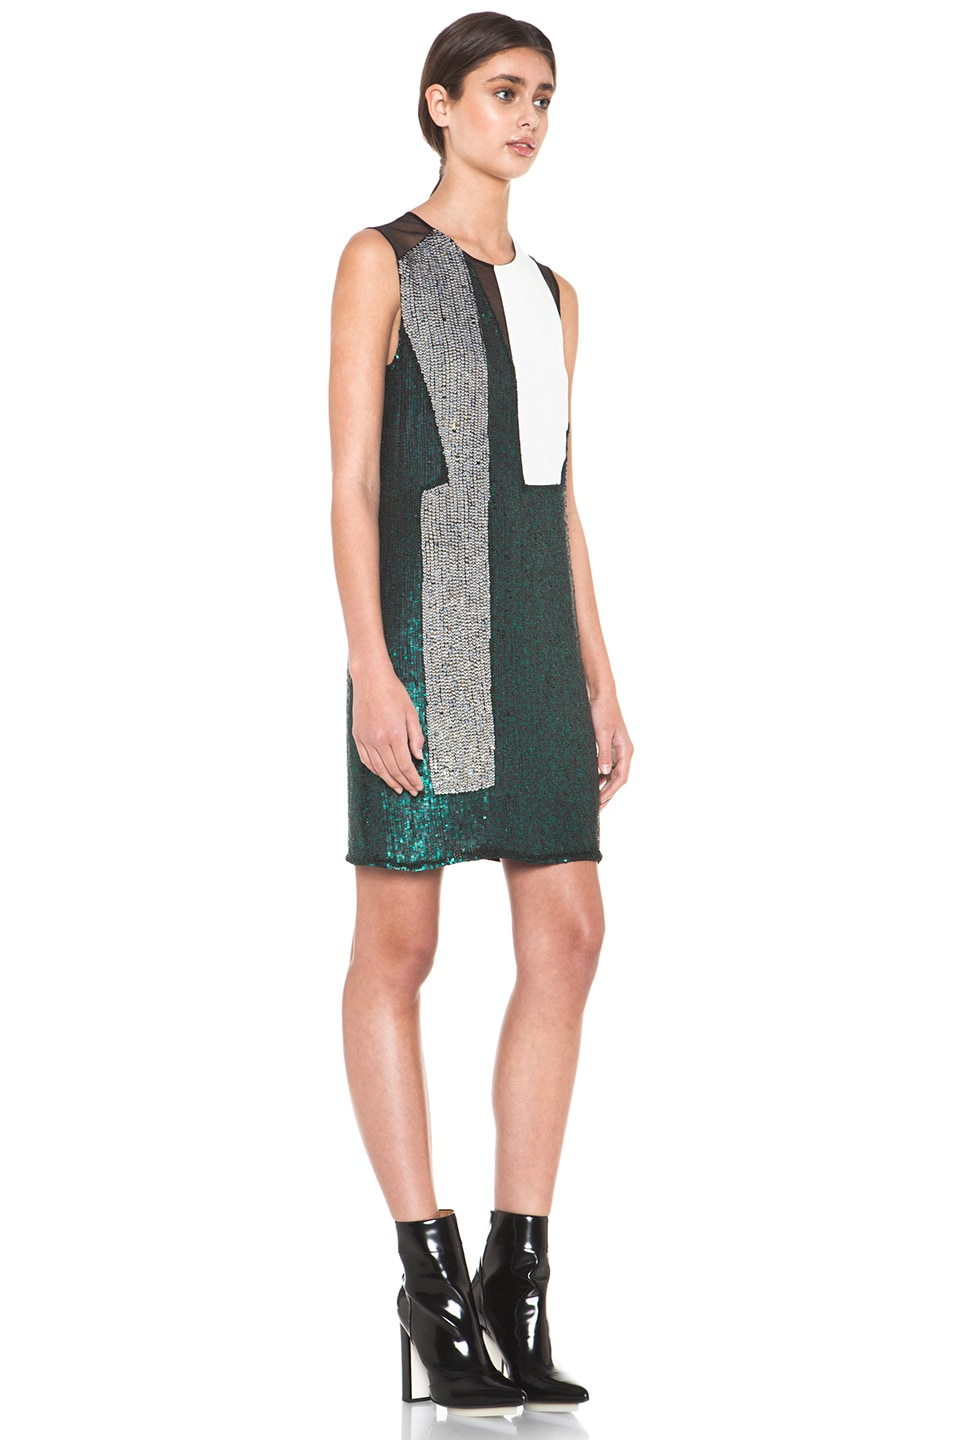 Image 3 of 3.1 phillip lim Collage Dress in Emerald